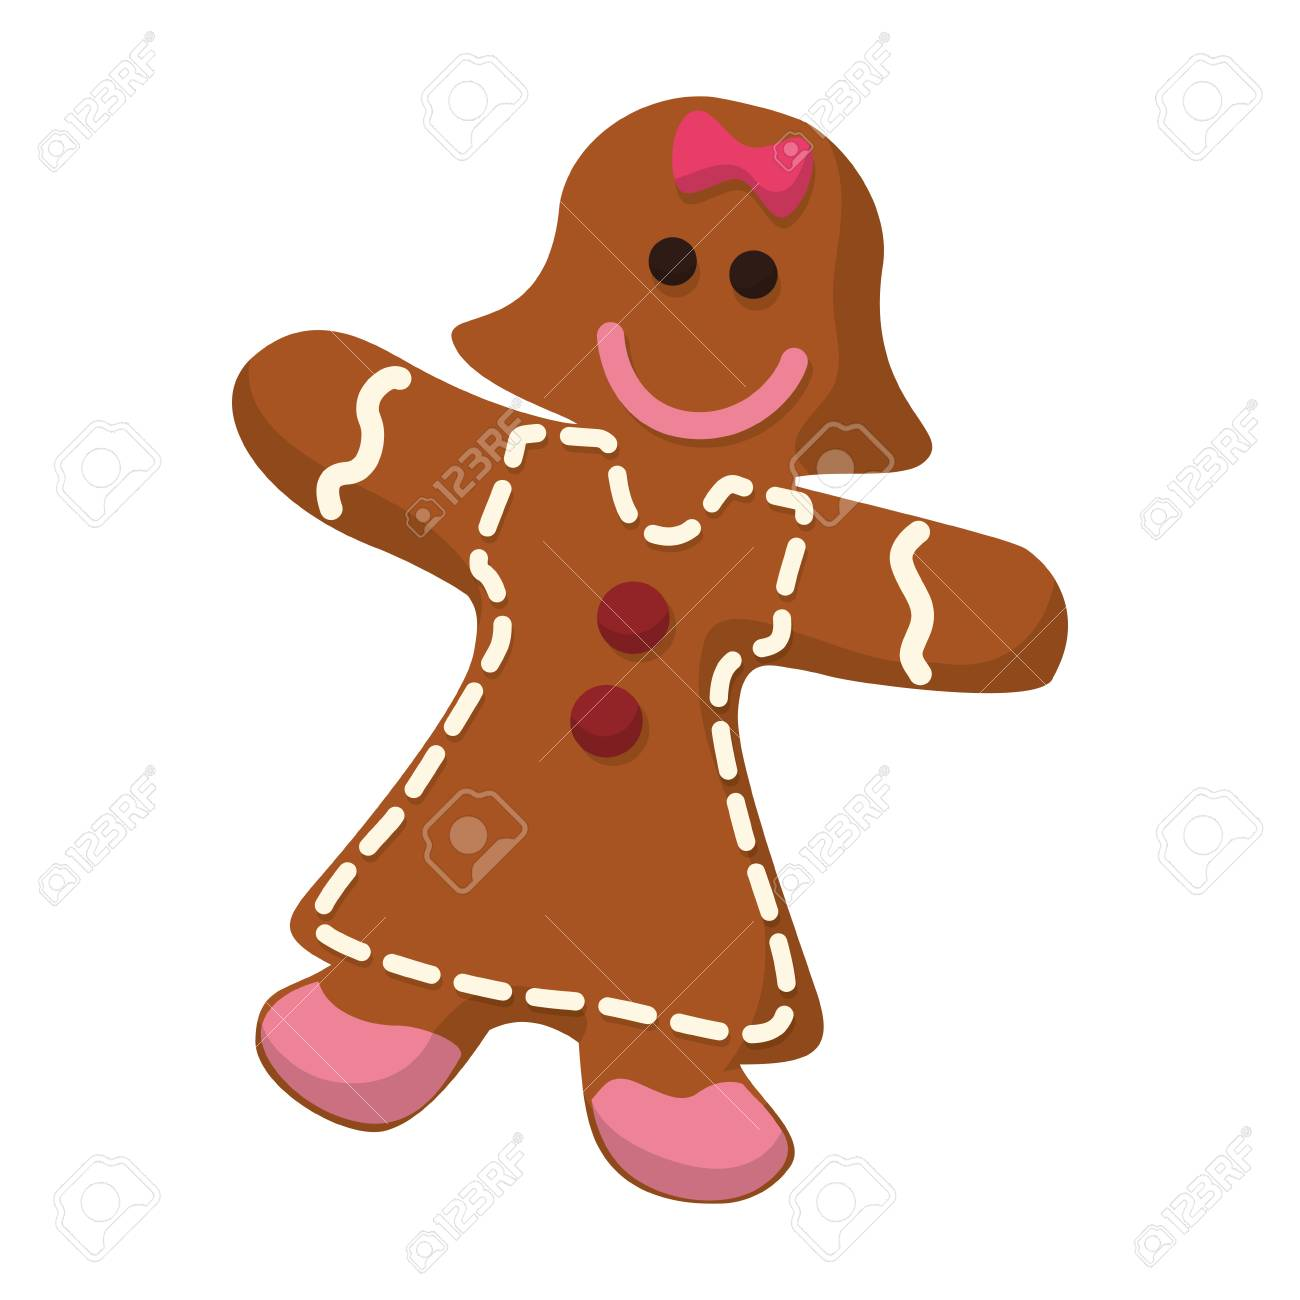 gingerbread girl cookie vector icon illustration graphic design.